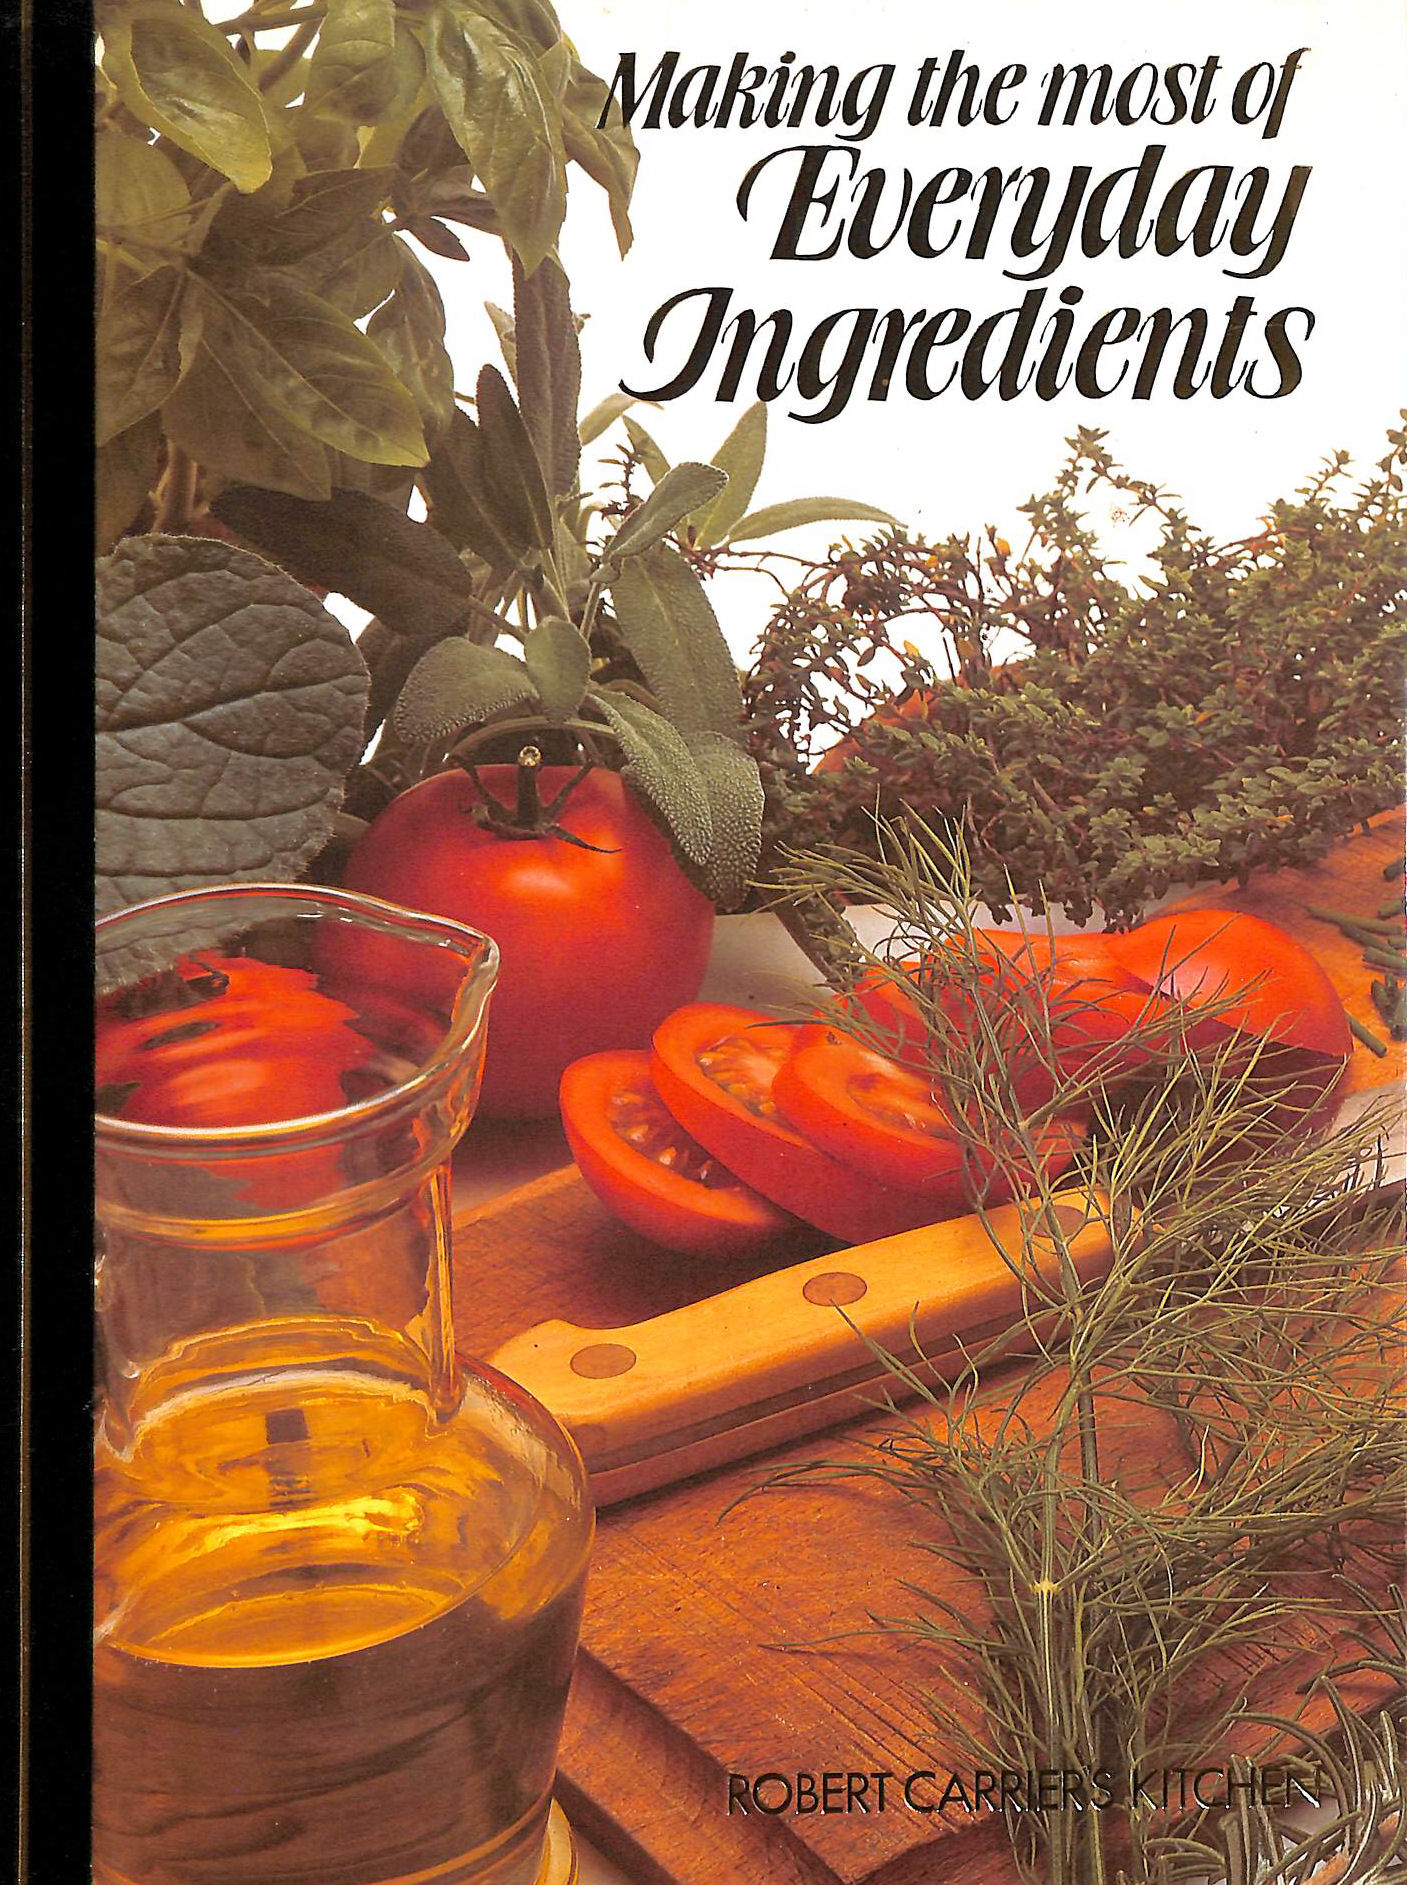 Image for Making the most of everyday ingredients (Robert Carrier's Kitchen)